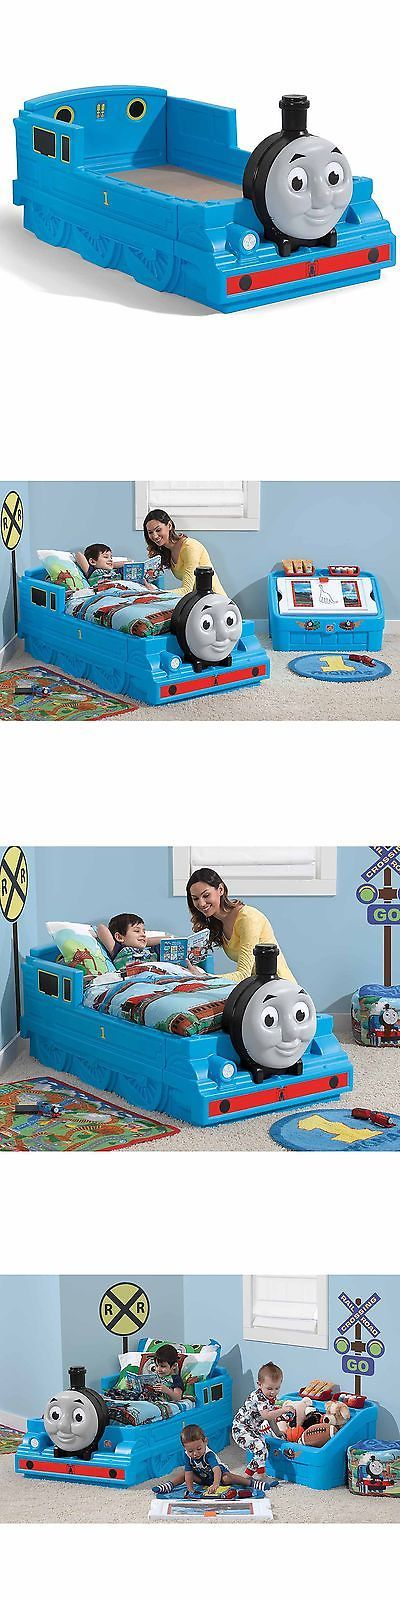 Home D cor 146110: Step2 Thomas The Tank Engine Toddler Bed -> BUY IT NOW ONLY: $208.77 on eBay!